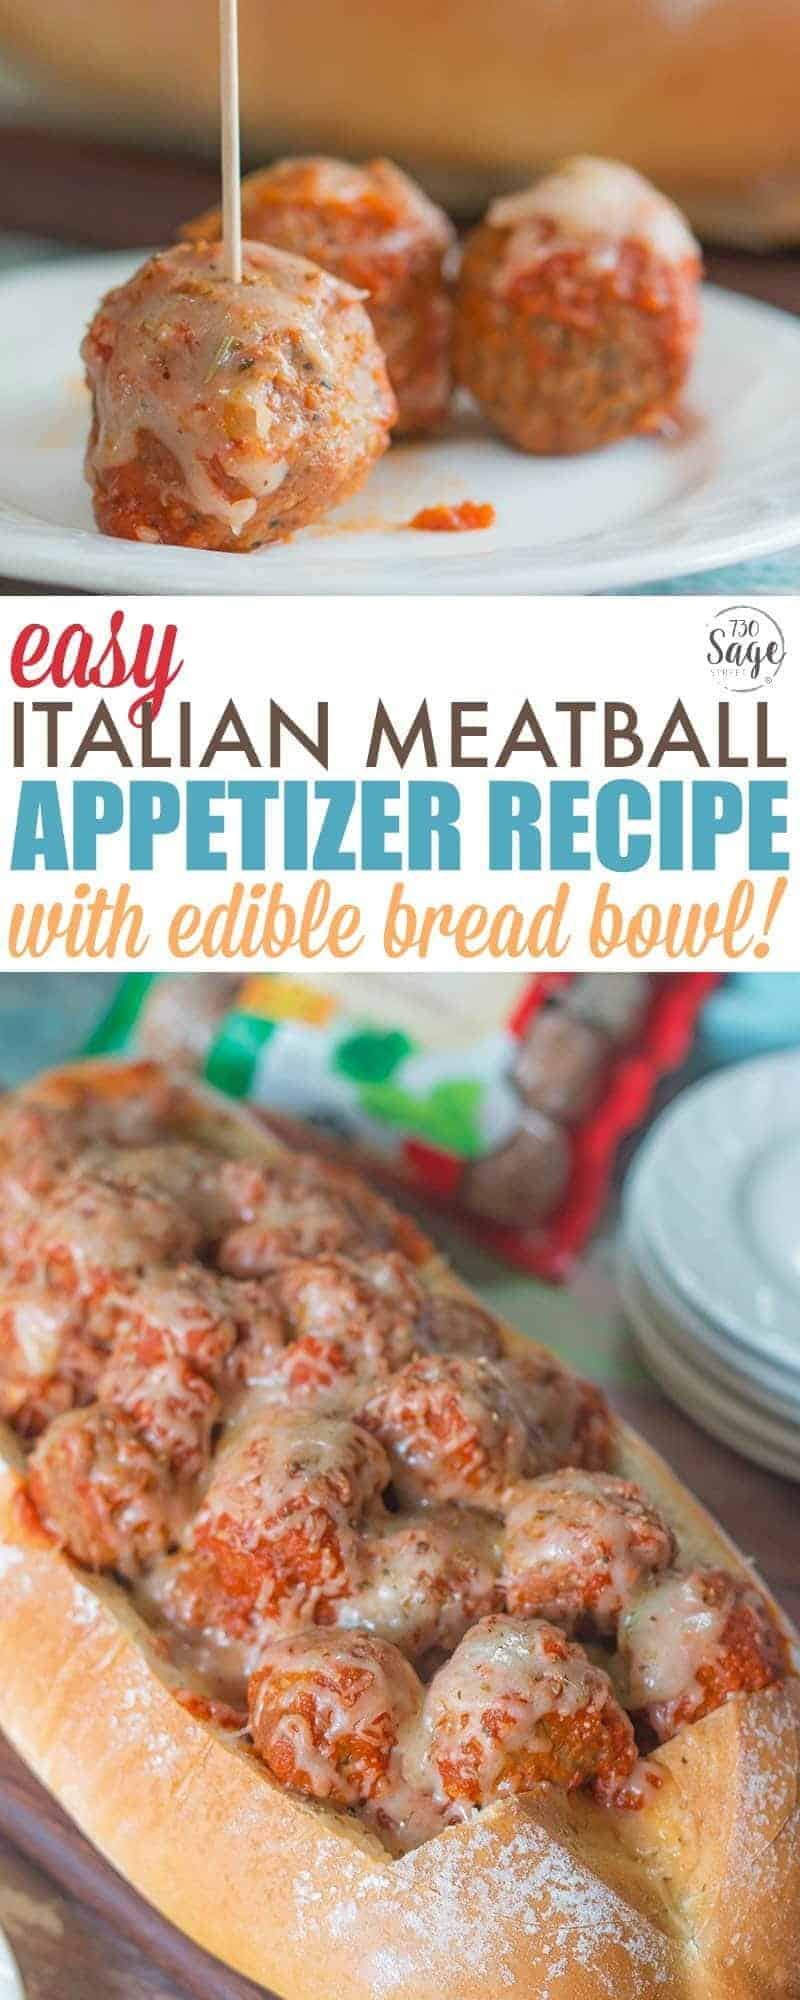 Italian Meatball Appetizer - Quick and Easy Bread Bowl Recipe perfect for parties. Ready in less than 30 minutes! Meatballs, marinara, mozzarella cheese and a loaf of Italian bread are all you need for a delicious appetizer everyone will enjoy. #appetizer #recipe #meatballs #easy #easyrecipe #party #partyfood